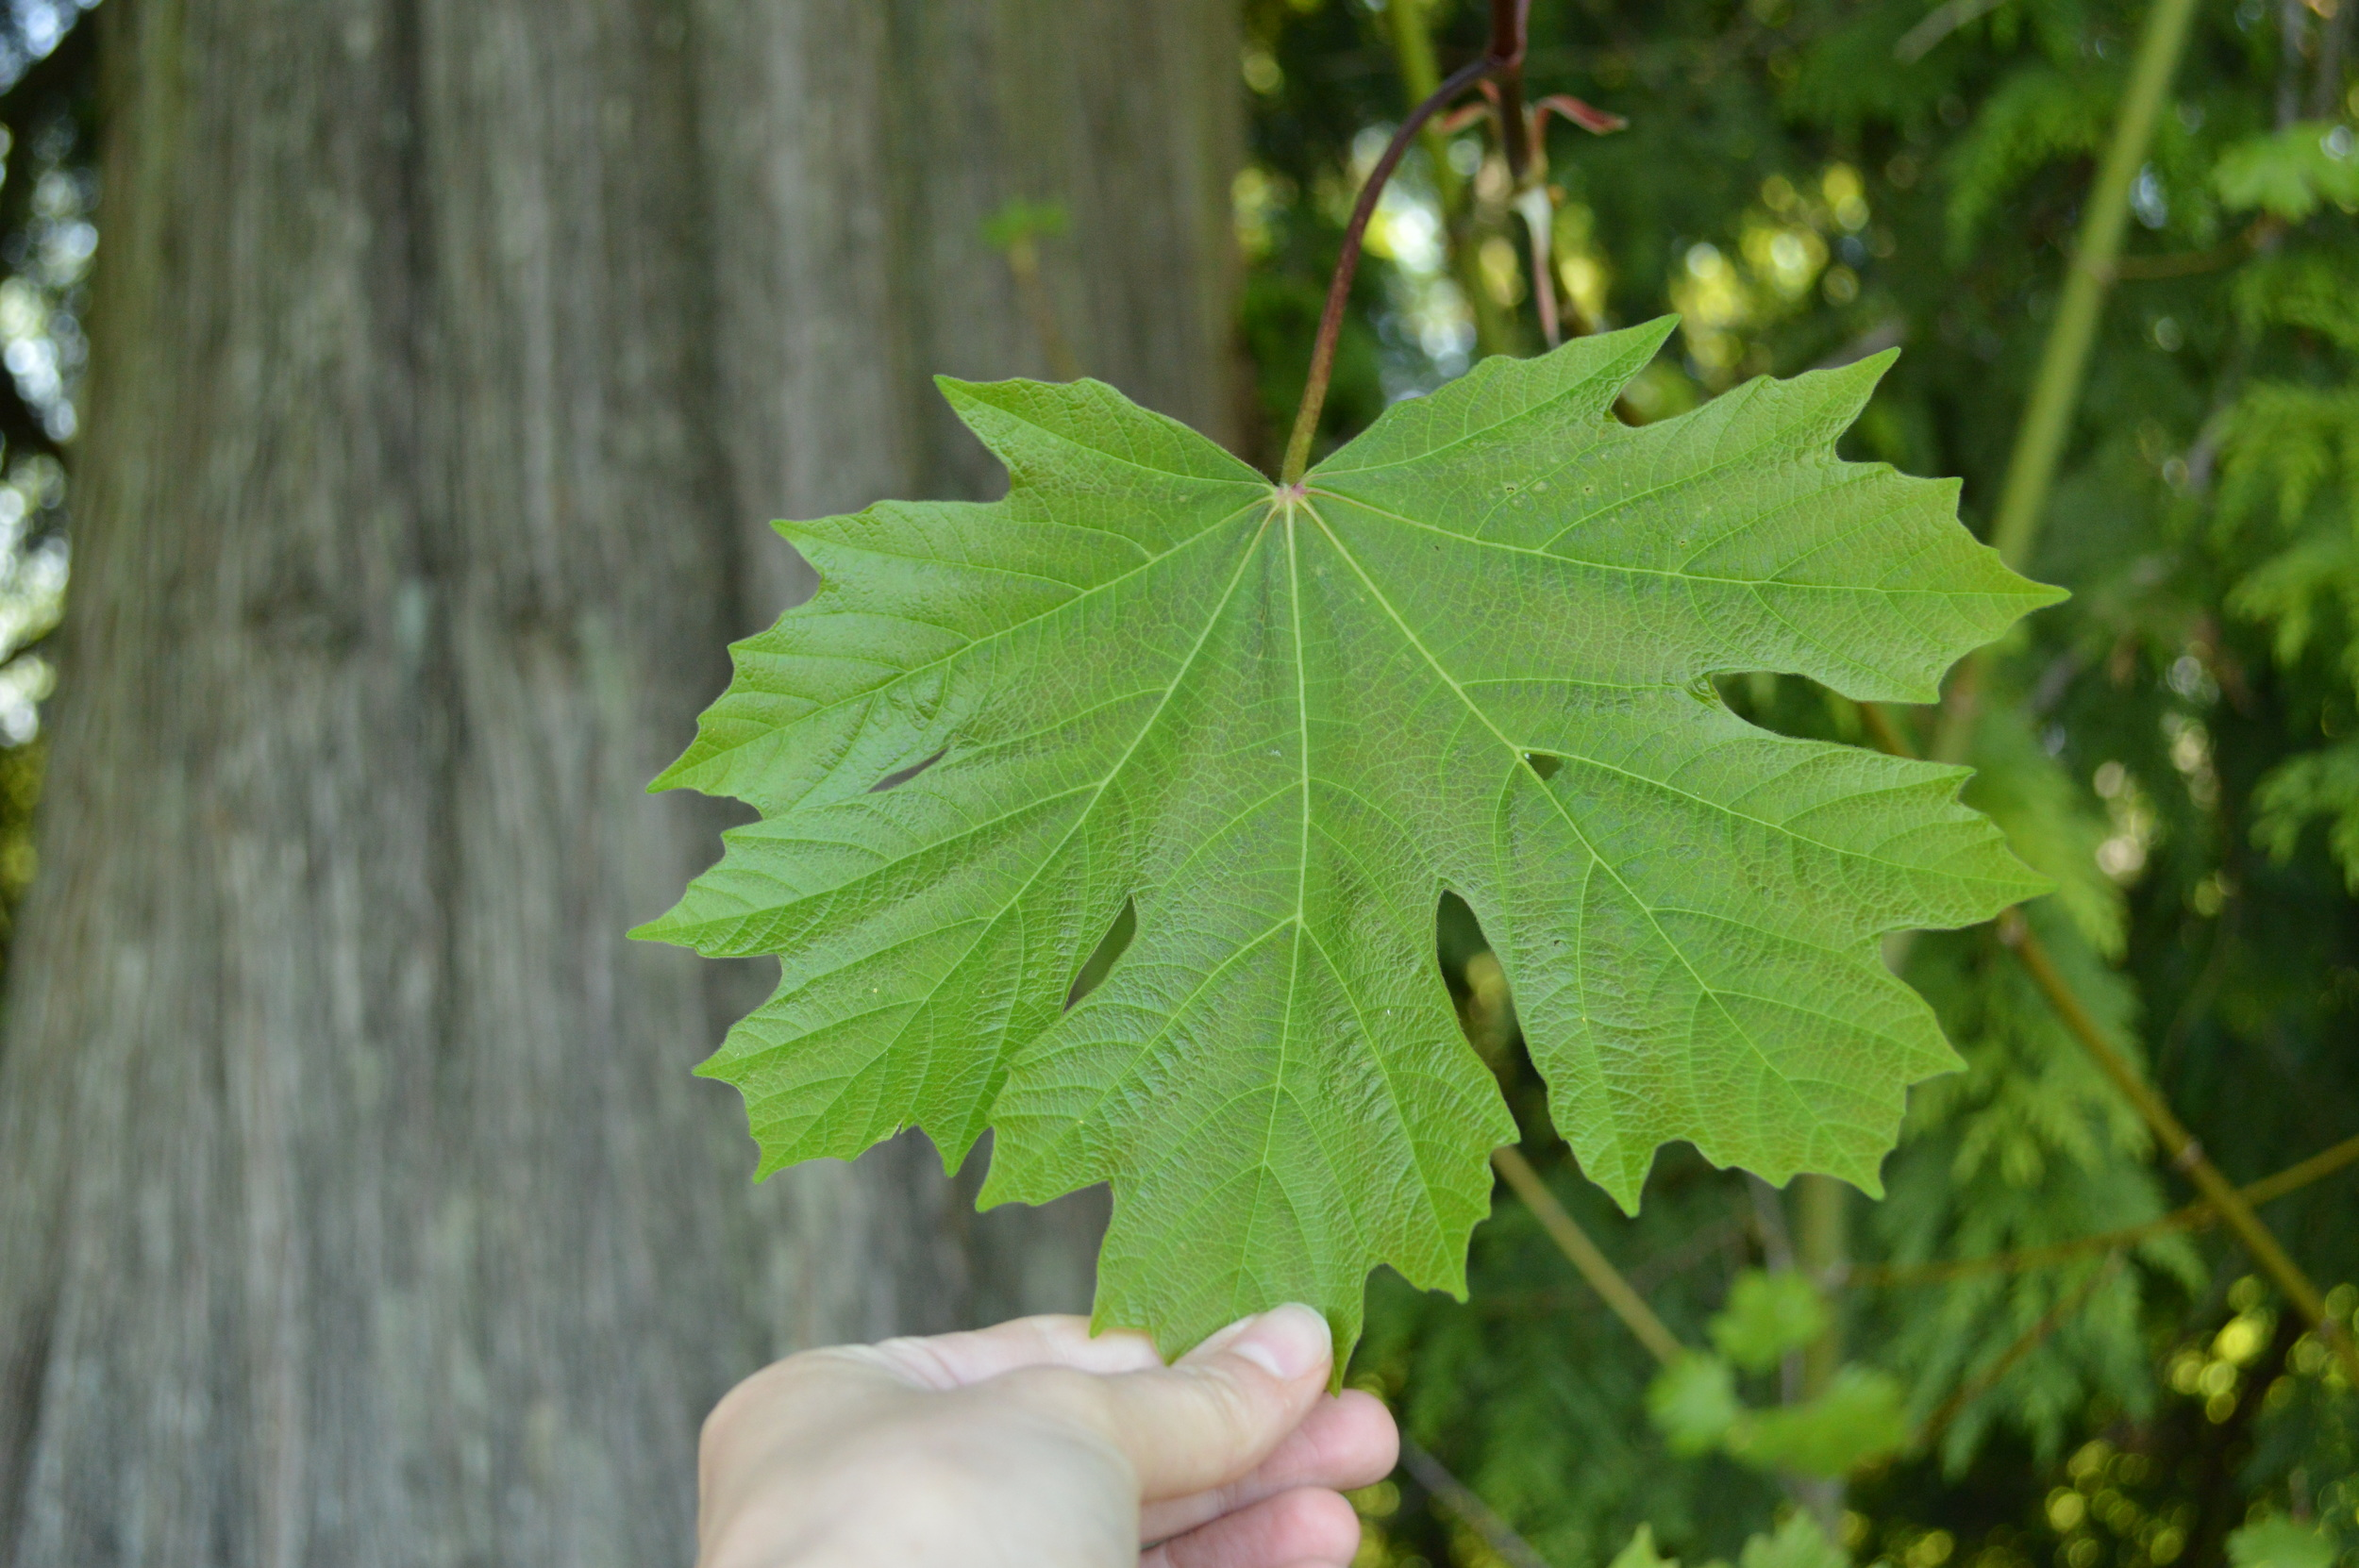 The leaf of a Bigleaf maple. I can see how it gets its name!